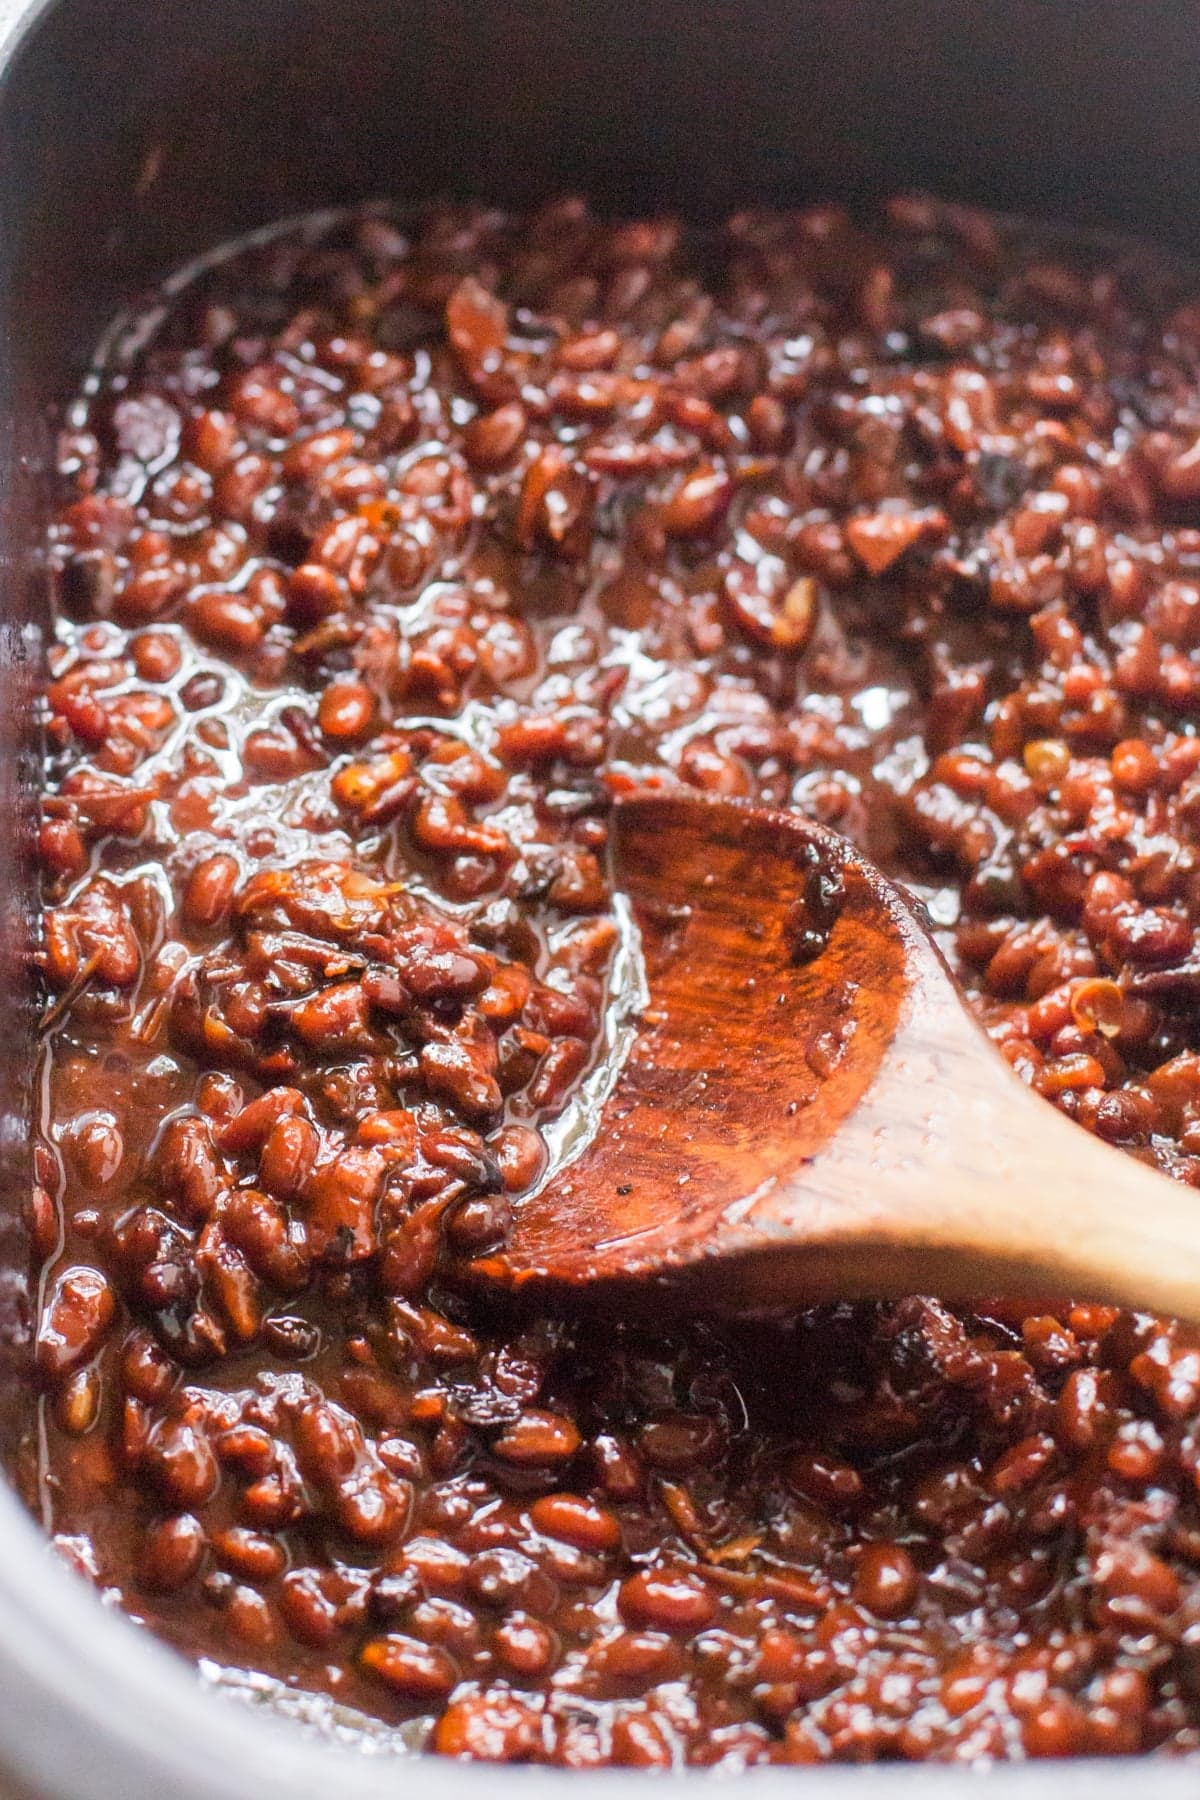 Slow Cooker Bacon Brown Sugar Baked Beans - Wholefully